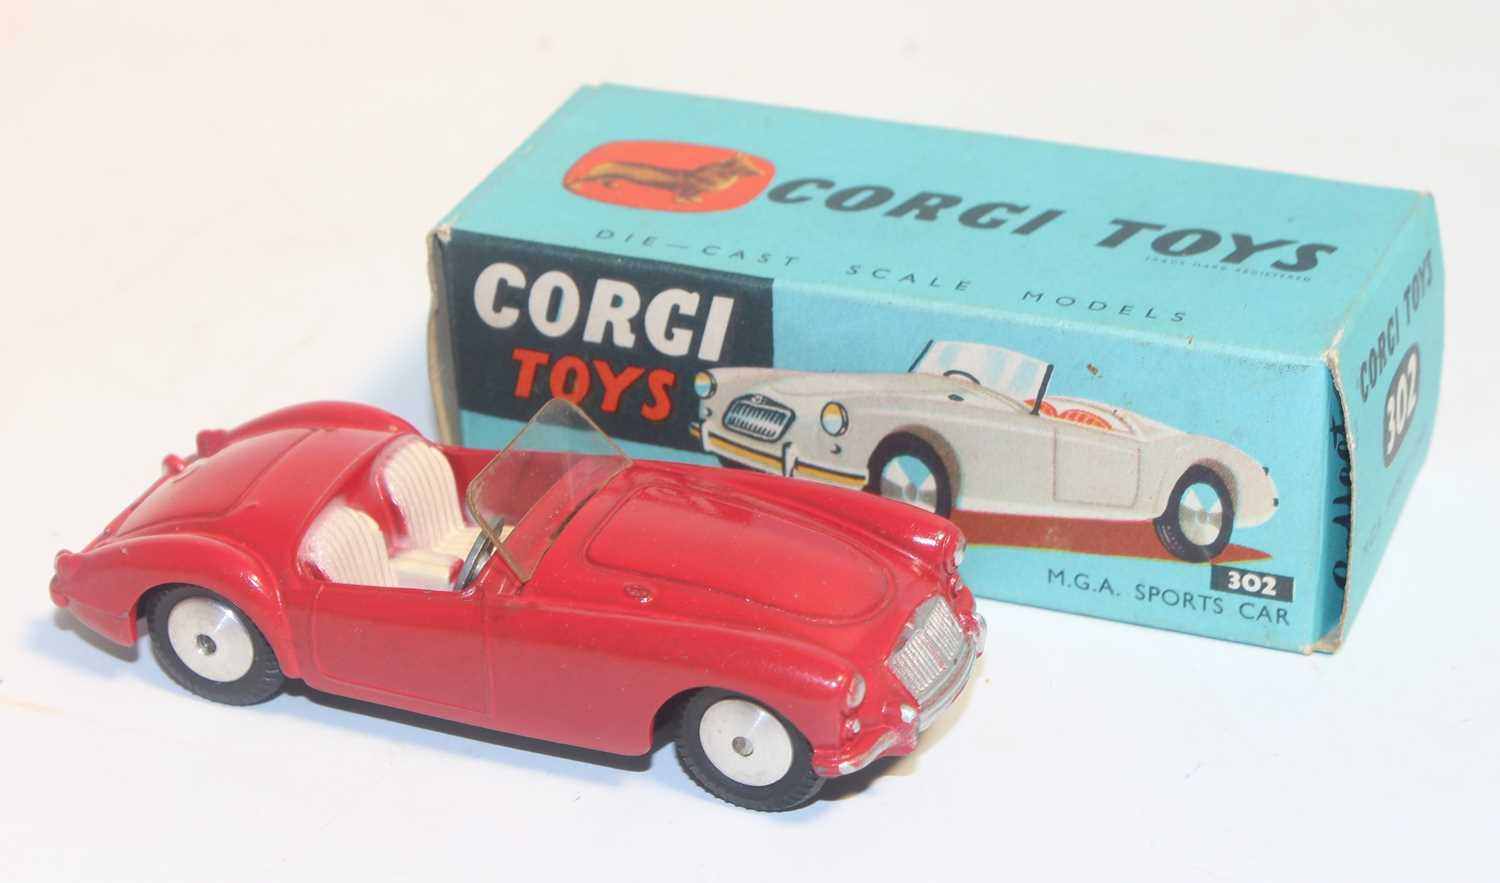 Corgi Toys 302, M.G.A sports car in red, mint condition with flat spun hubs with Corgi leaflet in - Image 2 of 3